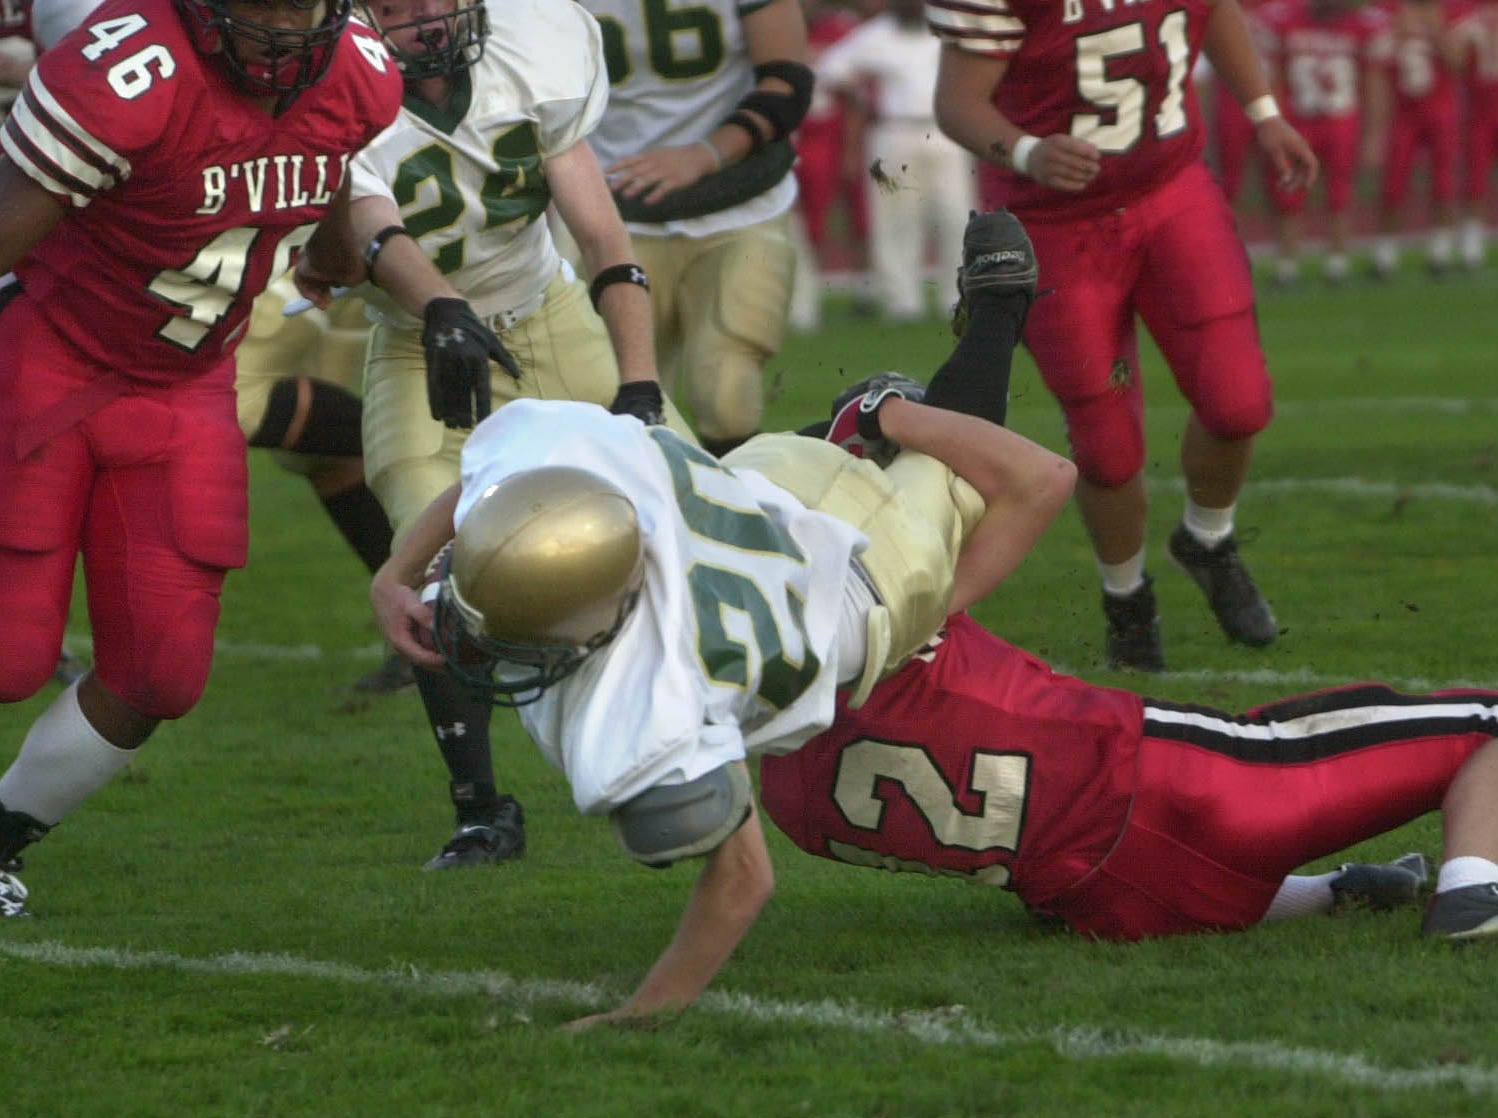 Vestal running back Pat Zelno scores Vestal's first touchdown of the 2005 season over Baldwinsville's Andrew Clark during Class AA football action on the opening night at Baldwinsville.